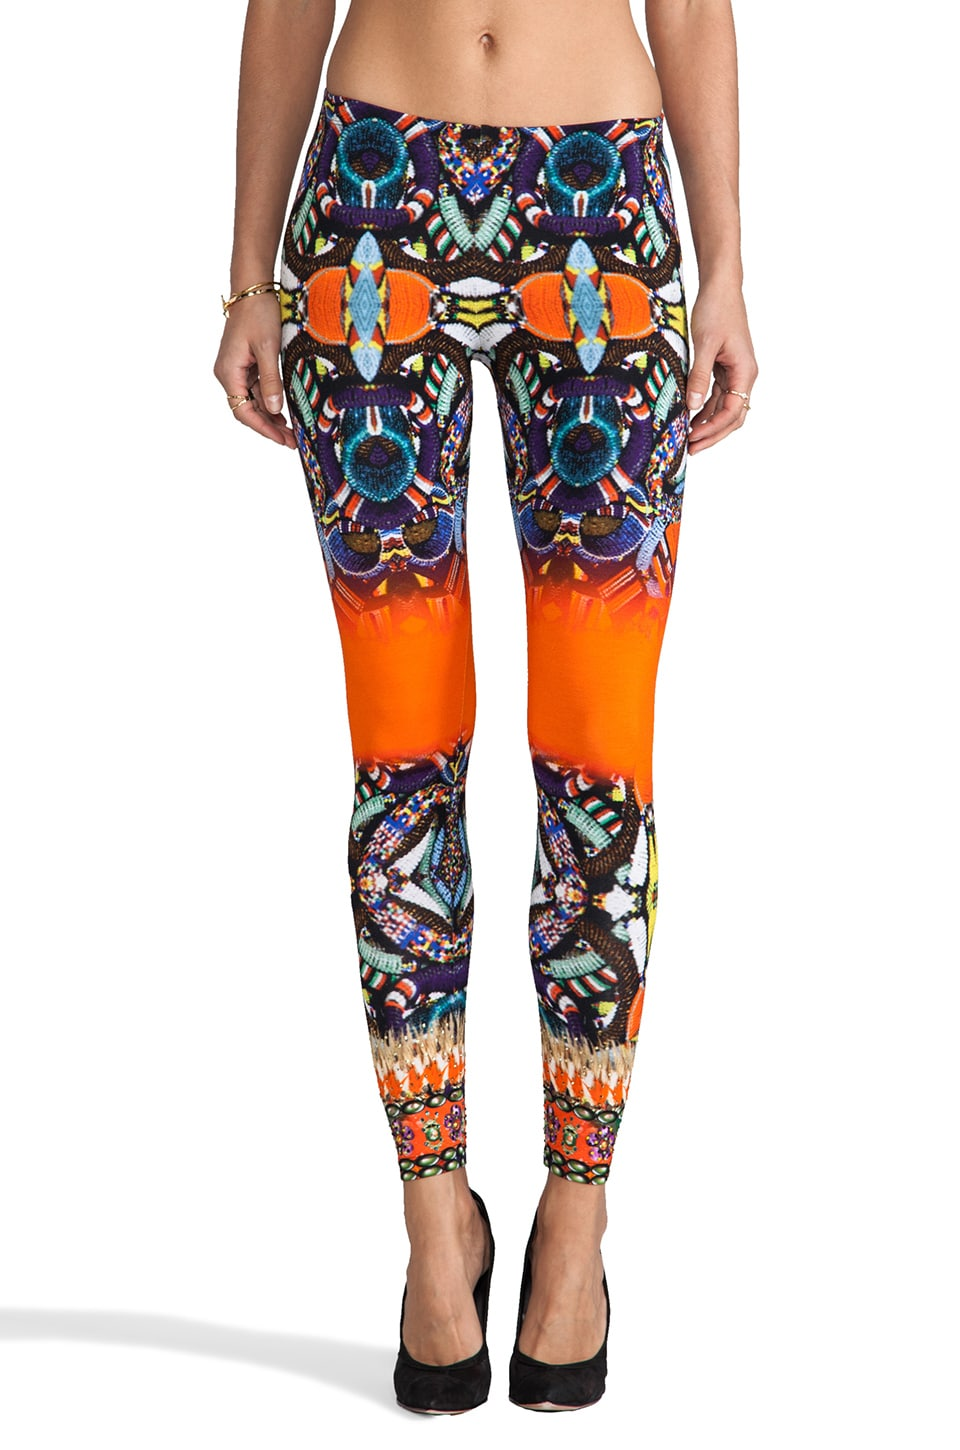 Camilla African Queen Legging in Entaki